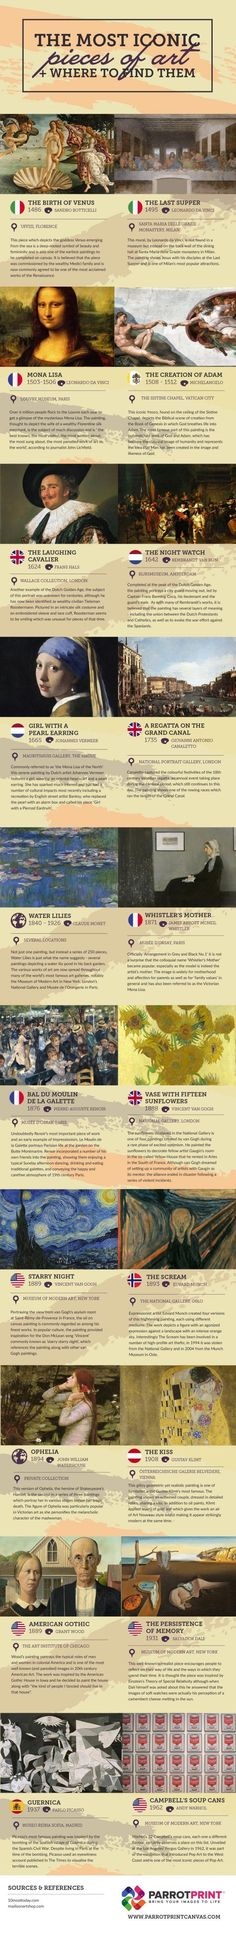 The Most Iconic Pieces of Art And Where To Find Them #Infographic #Art #Painting #paintinginfographics